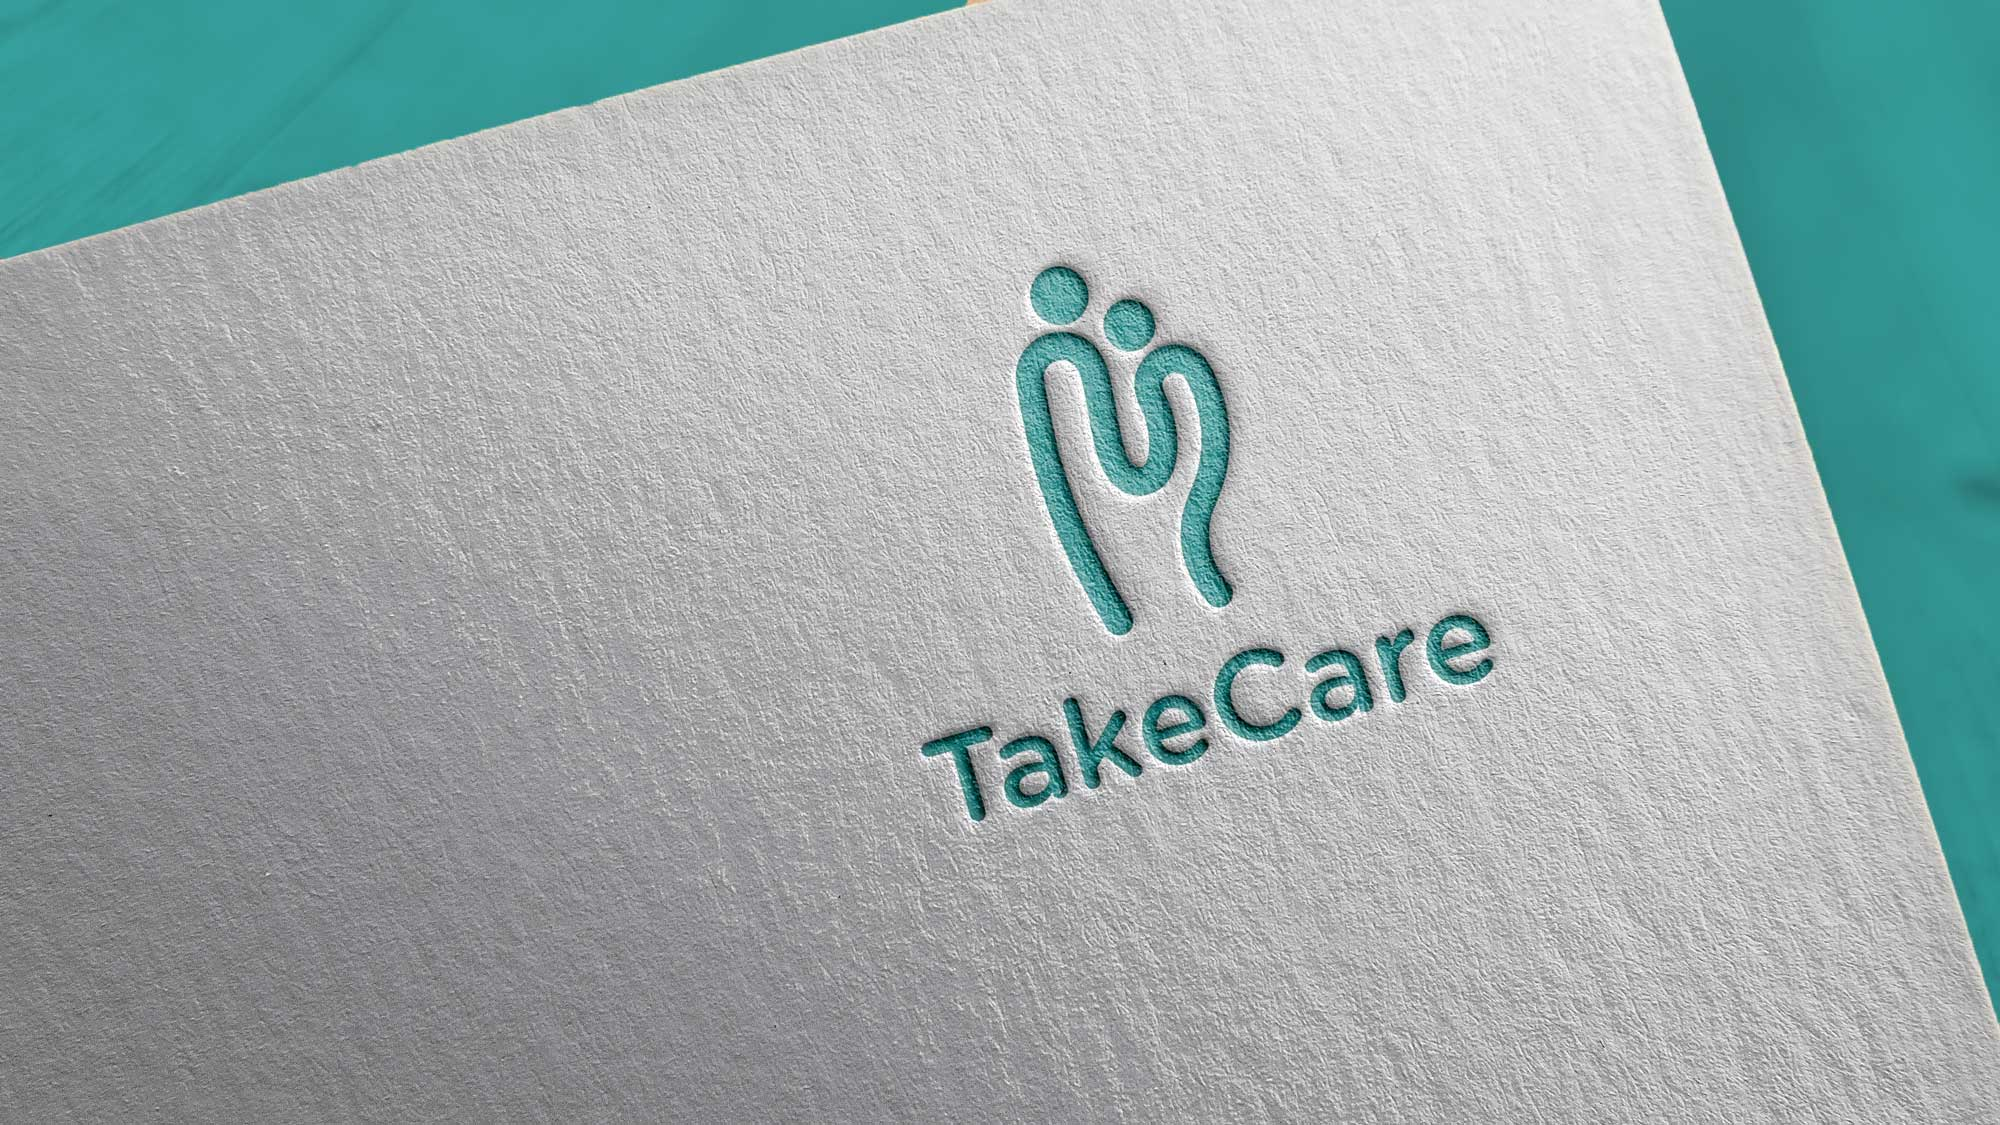 TakeCare logo on paper